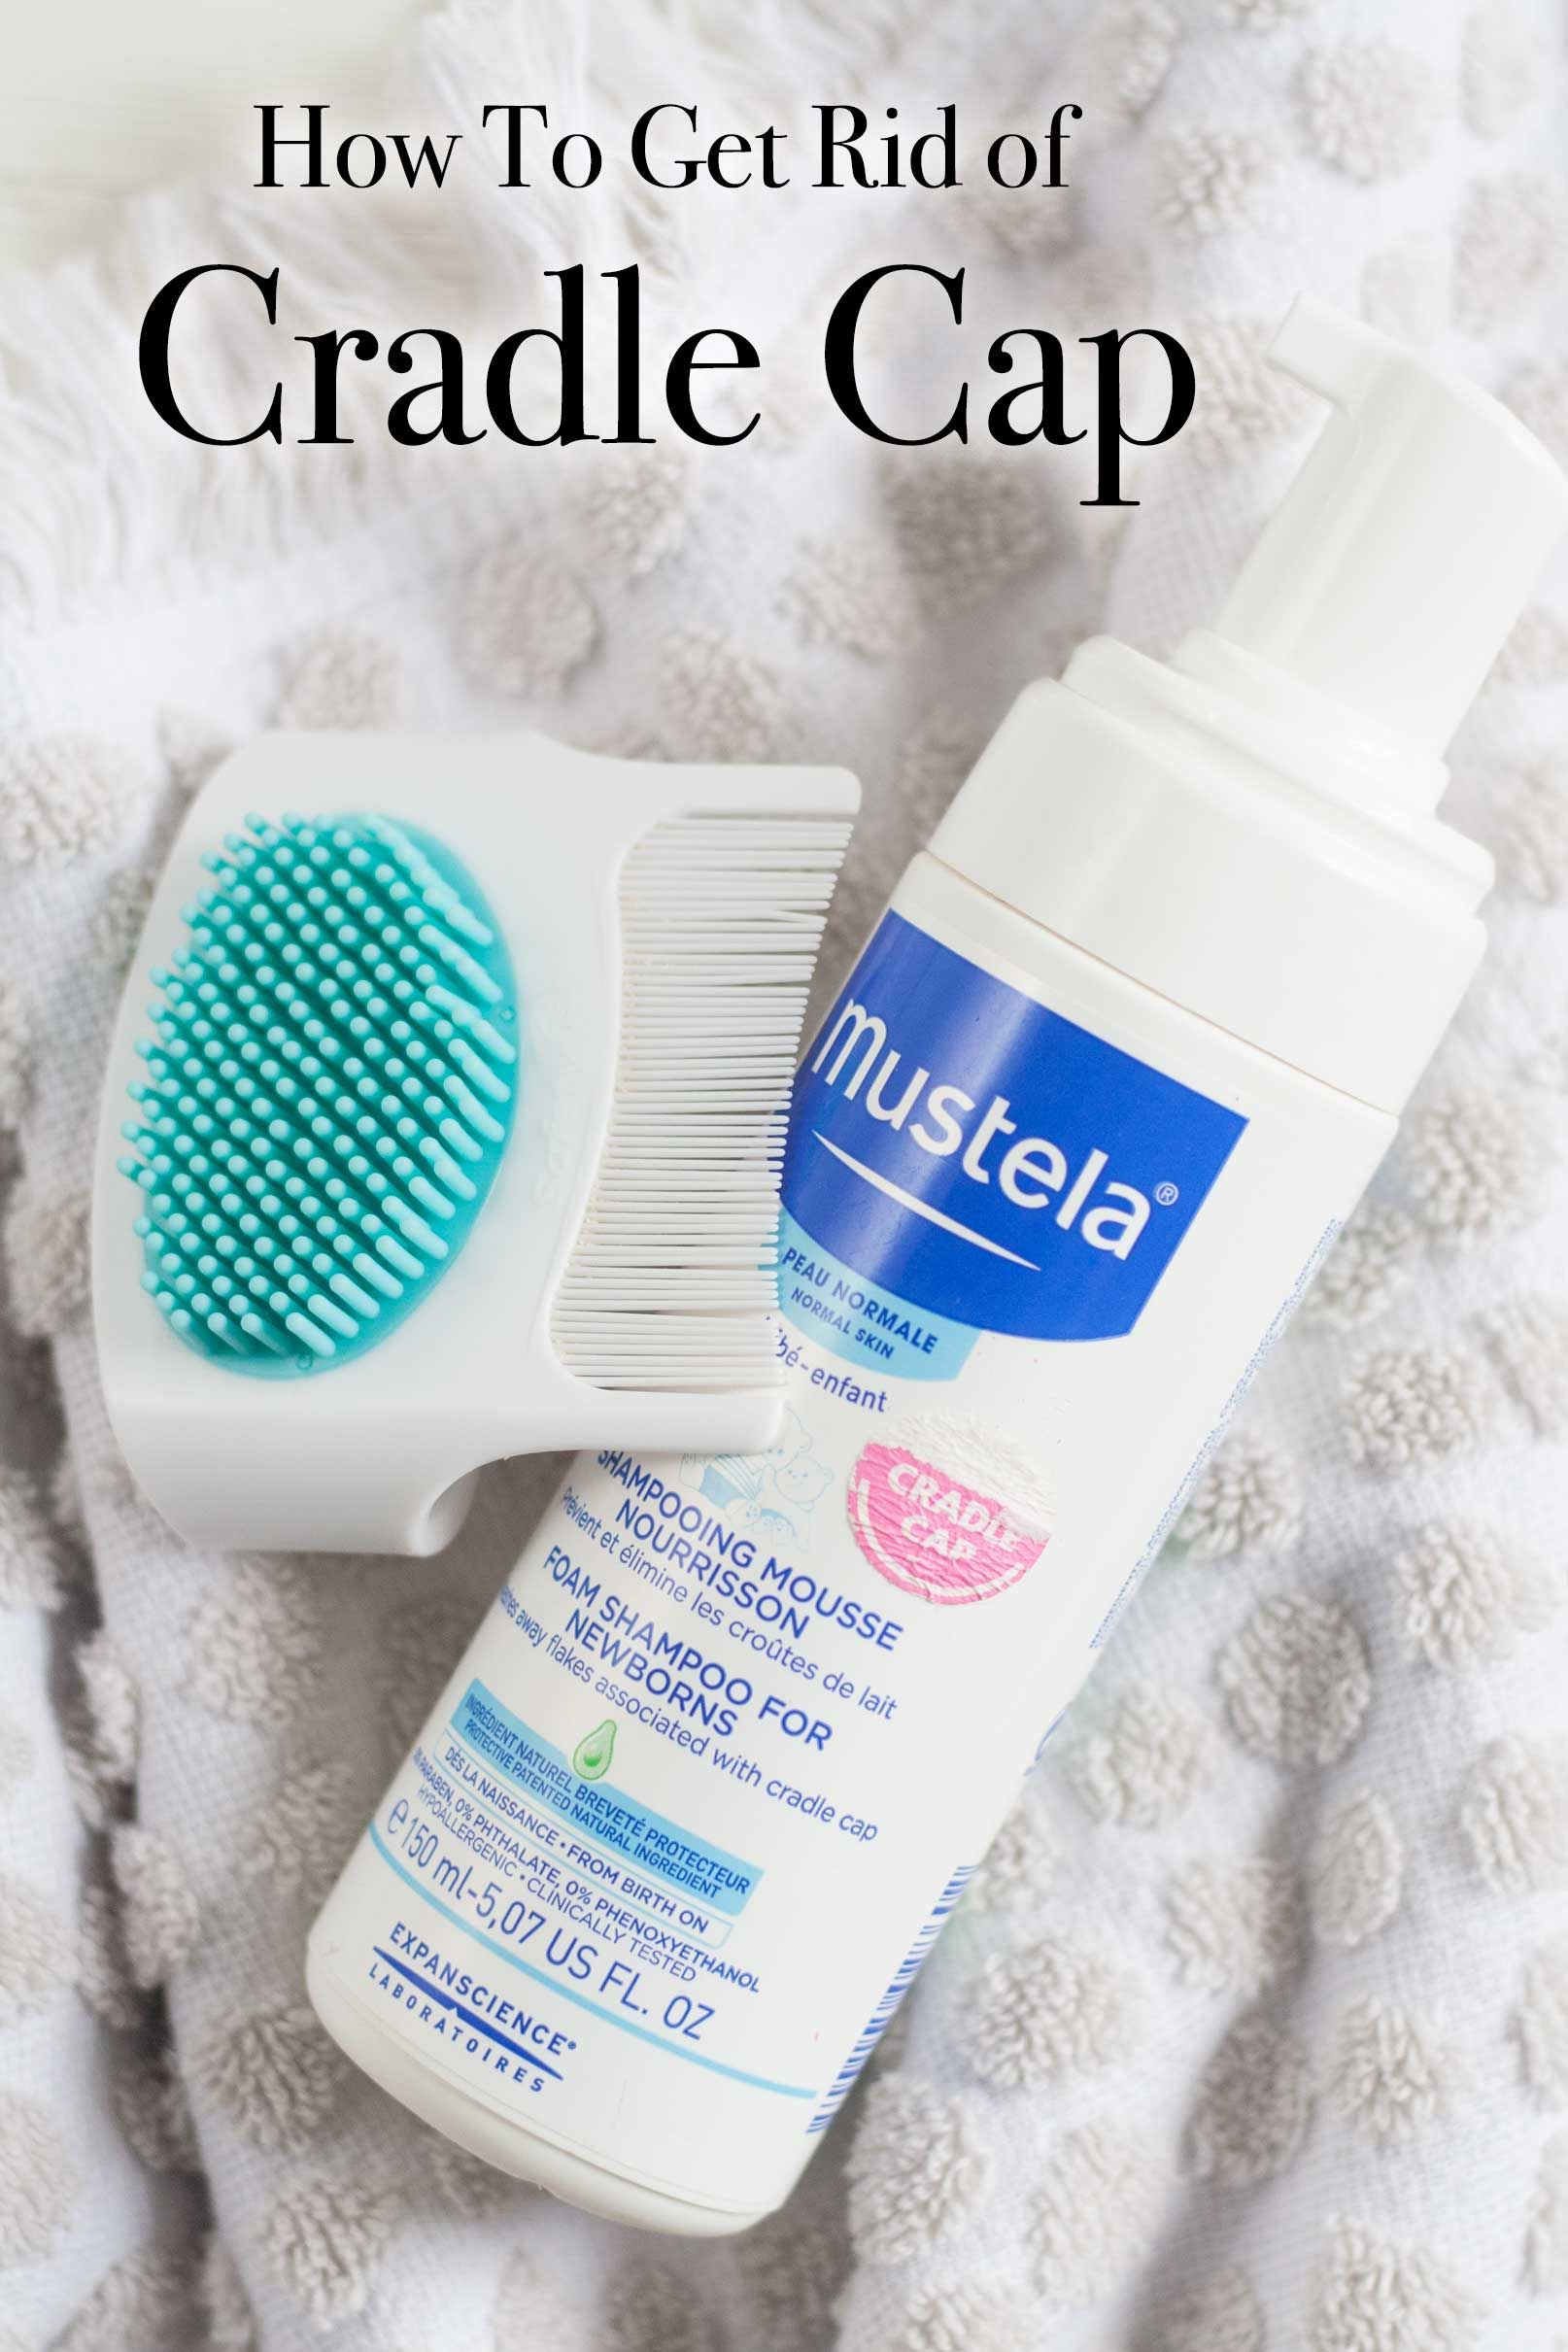 How To Get Rid Of Baby Cradle Cap With Images Cradle Cap Baby Cradle Cap Baby Cradle